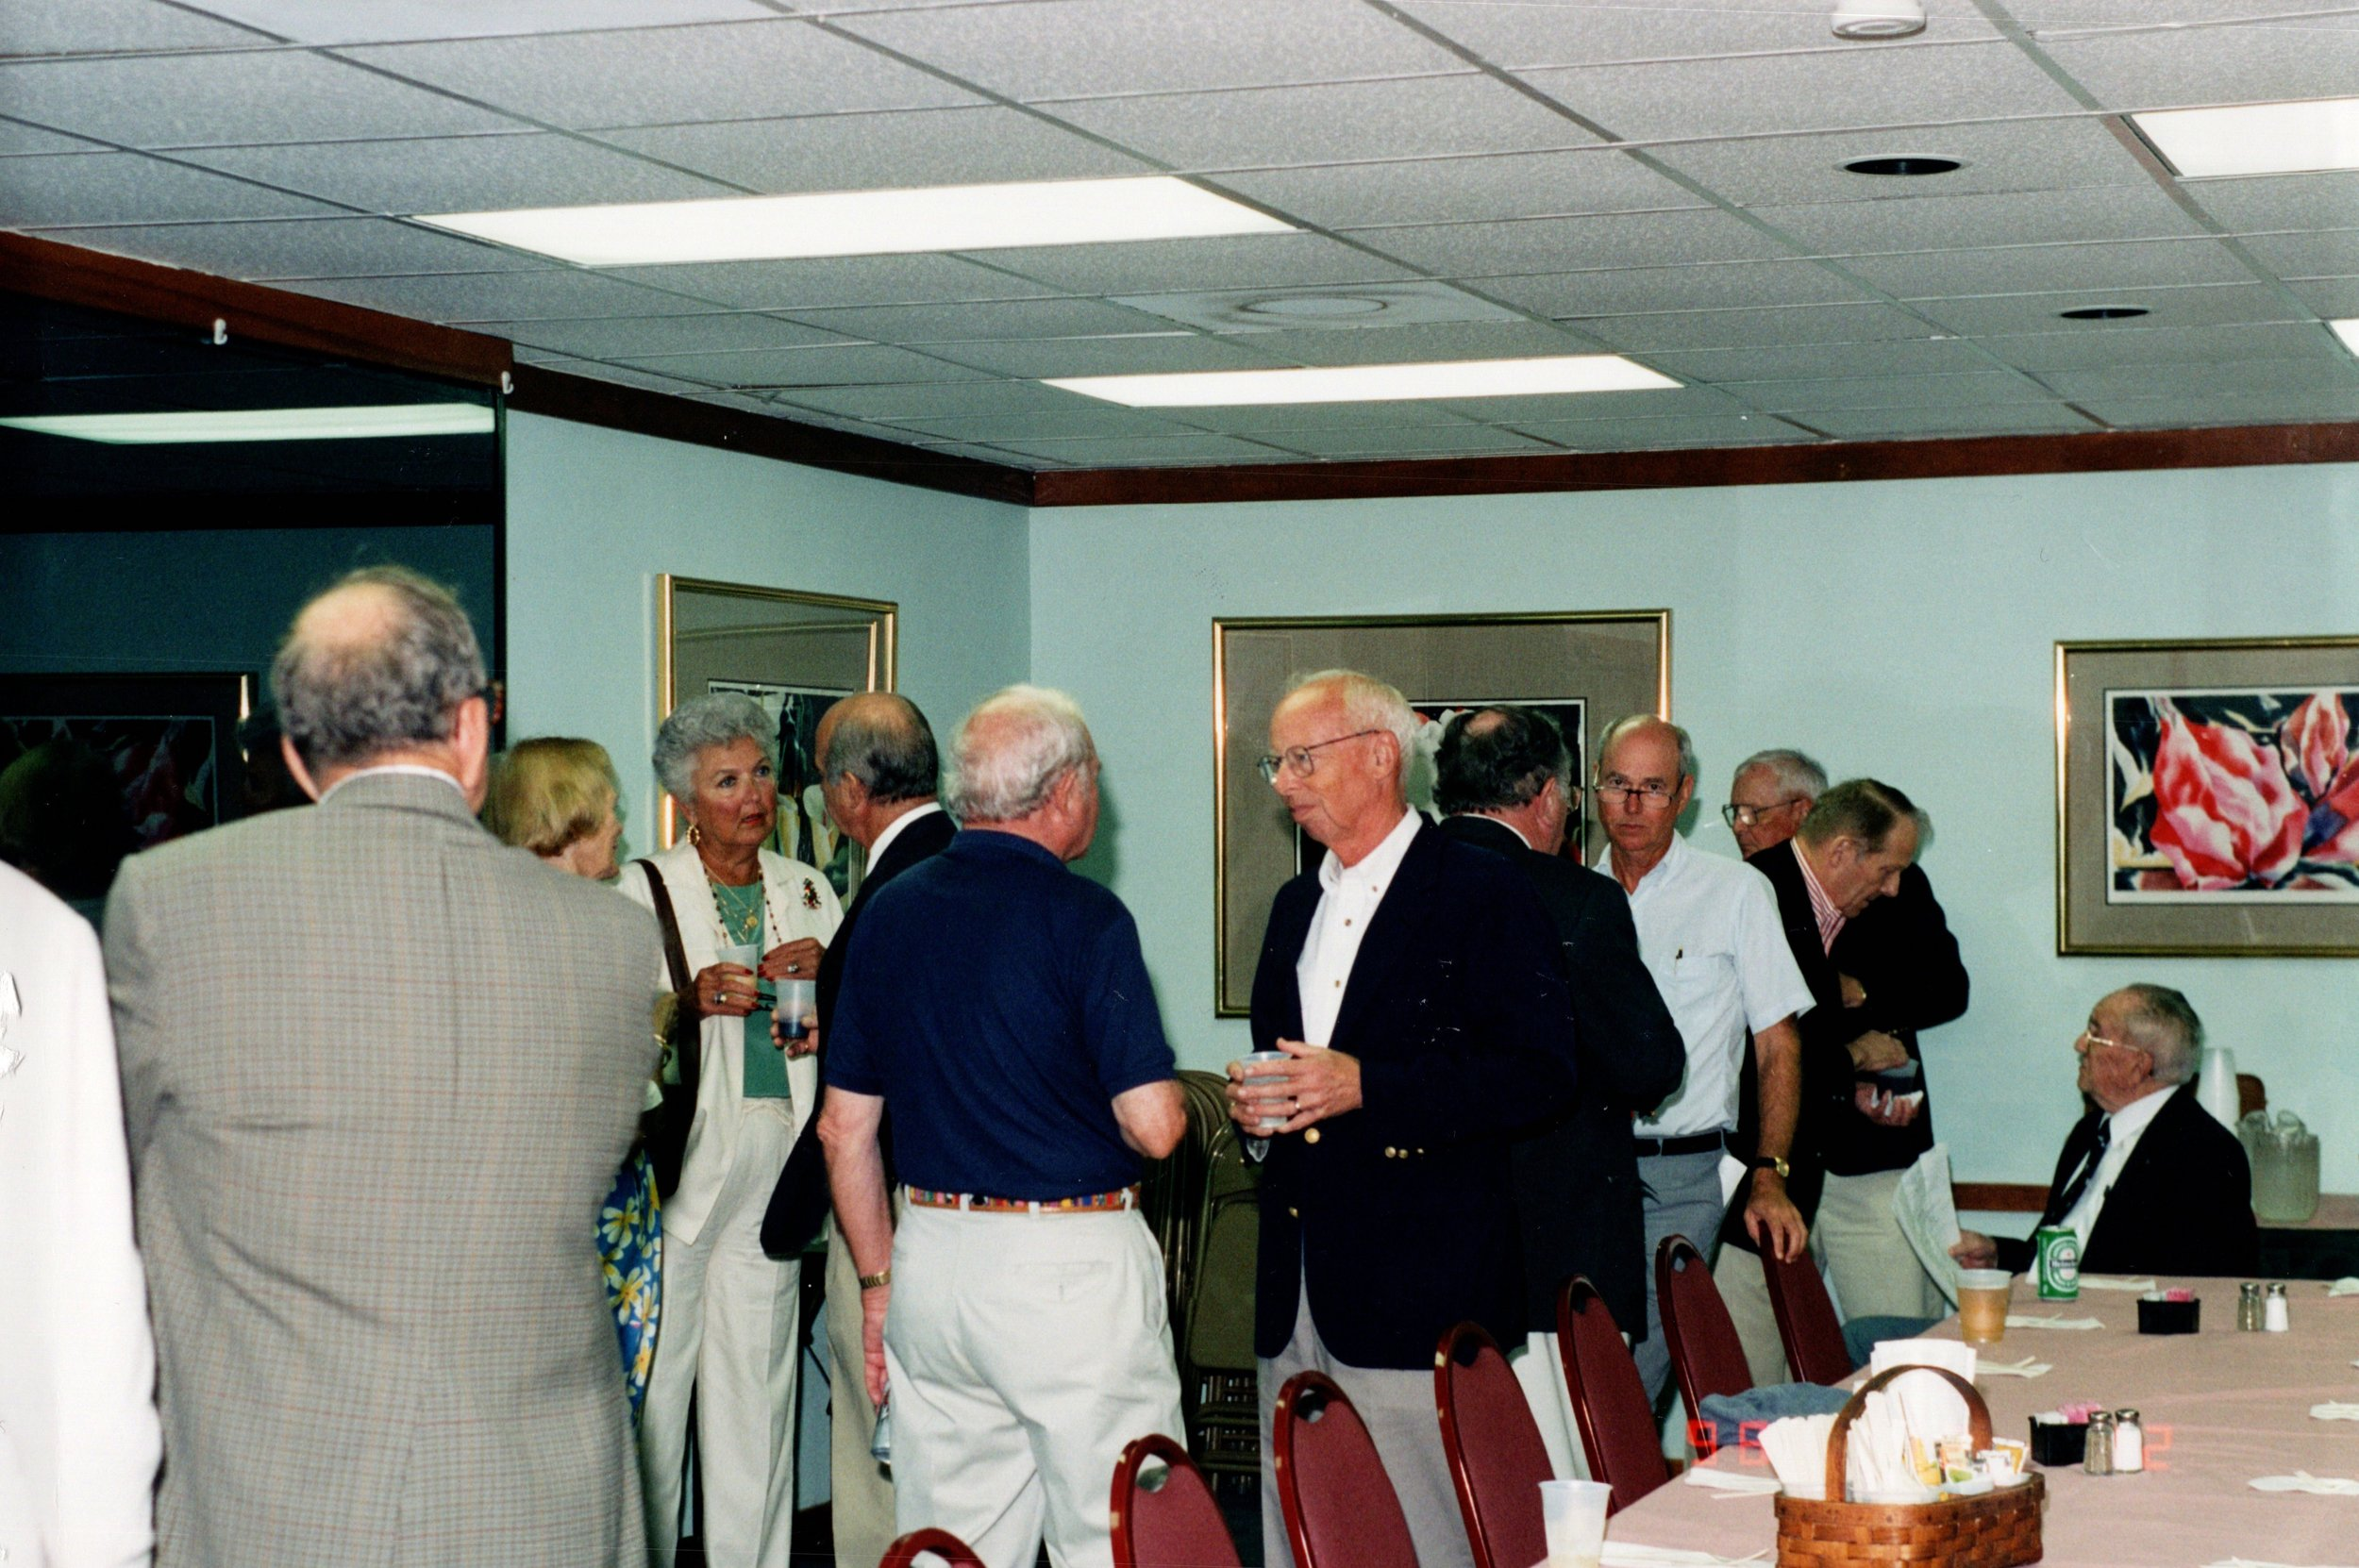 ??_??_98 - ANNUAL MEETING - UNKNOWN LOCATION 15.jpg